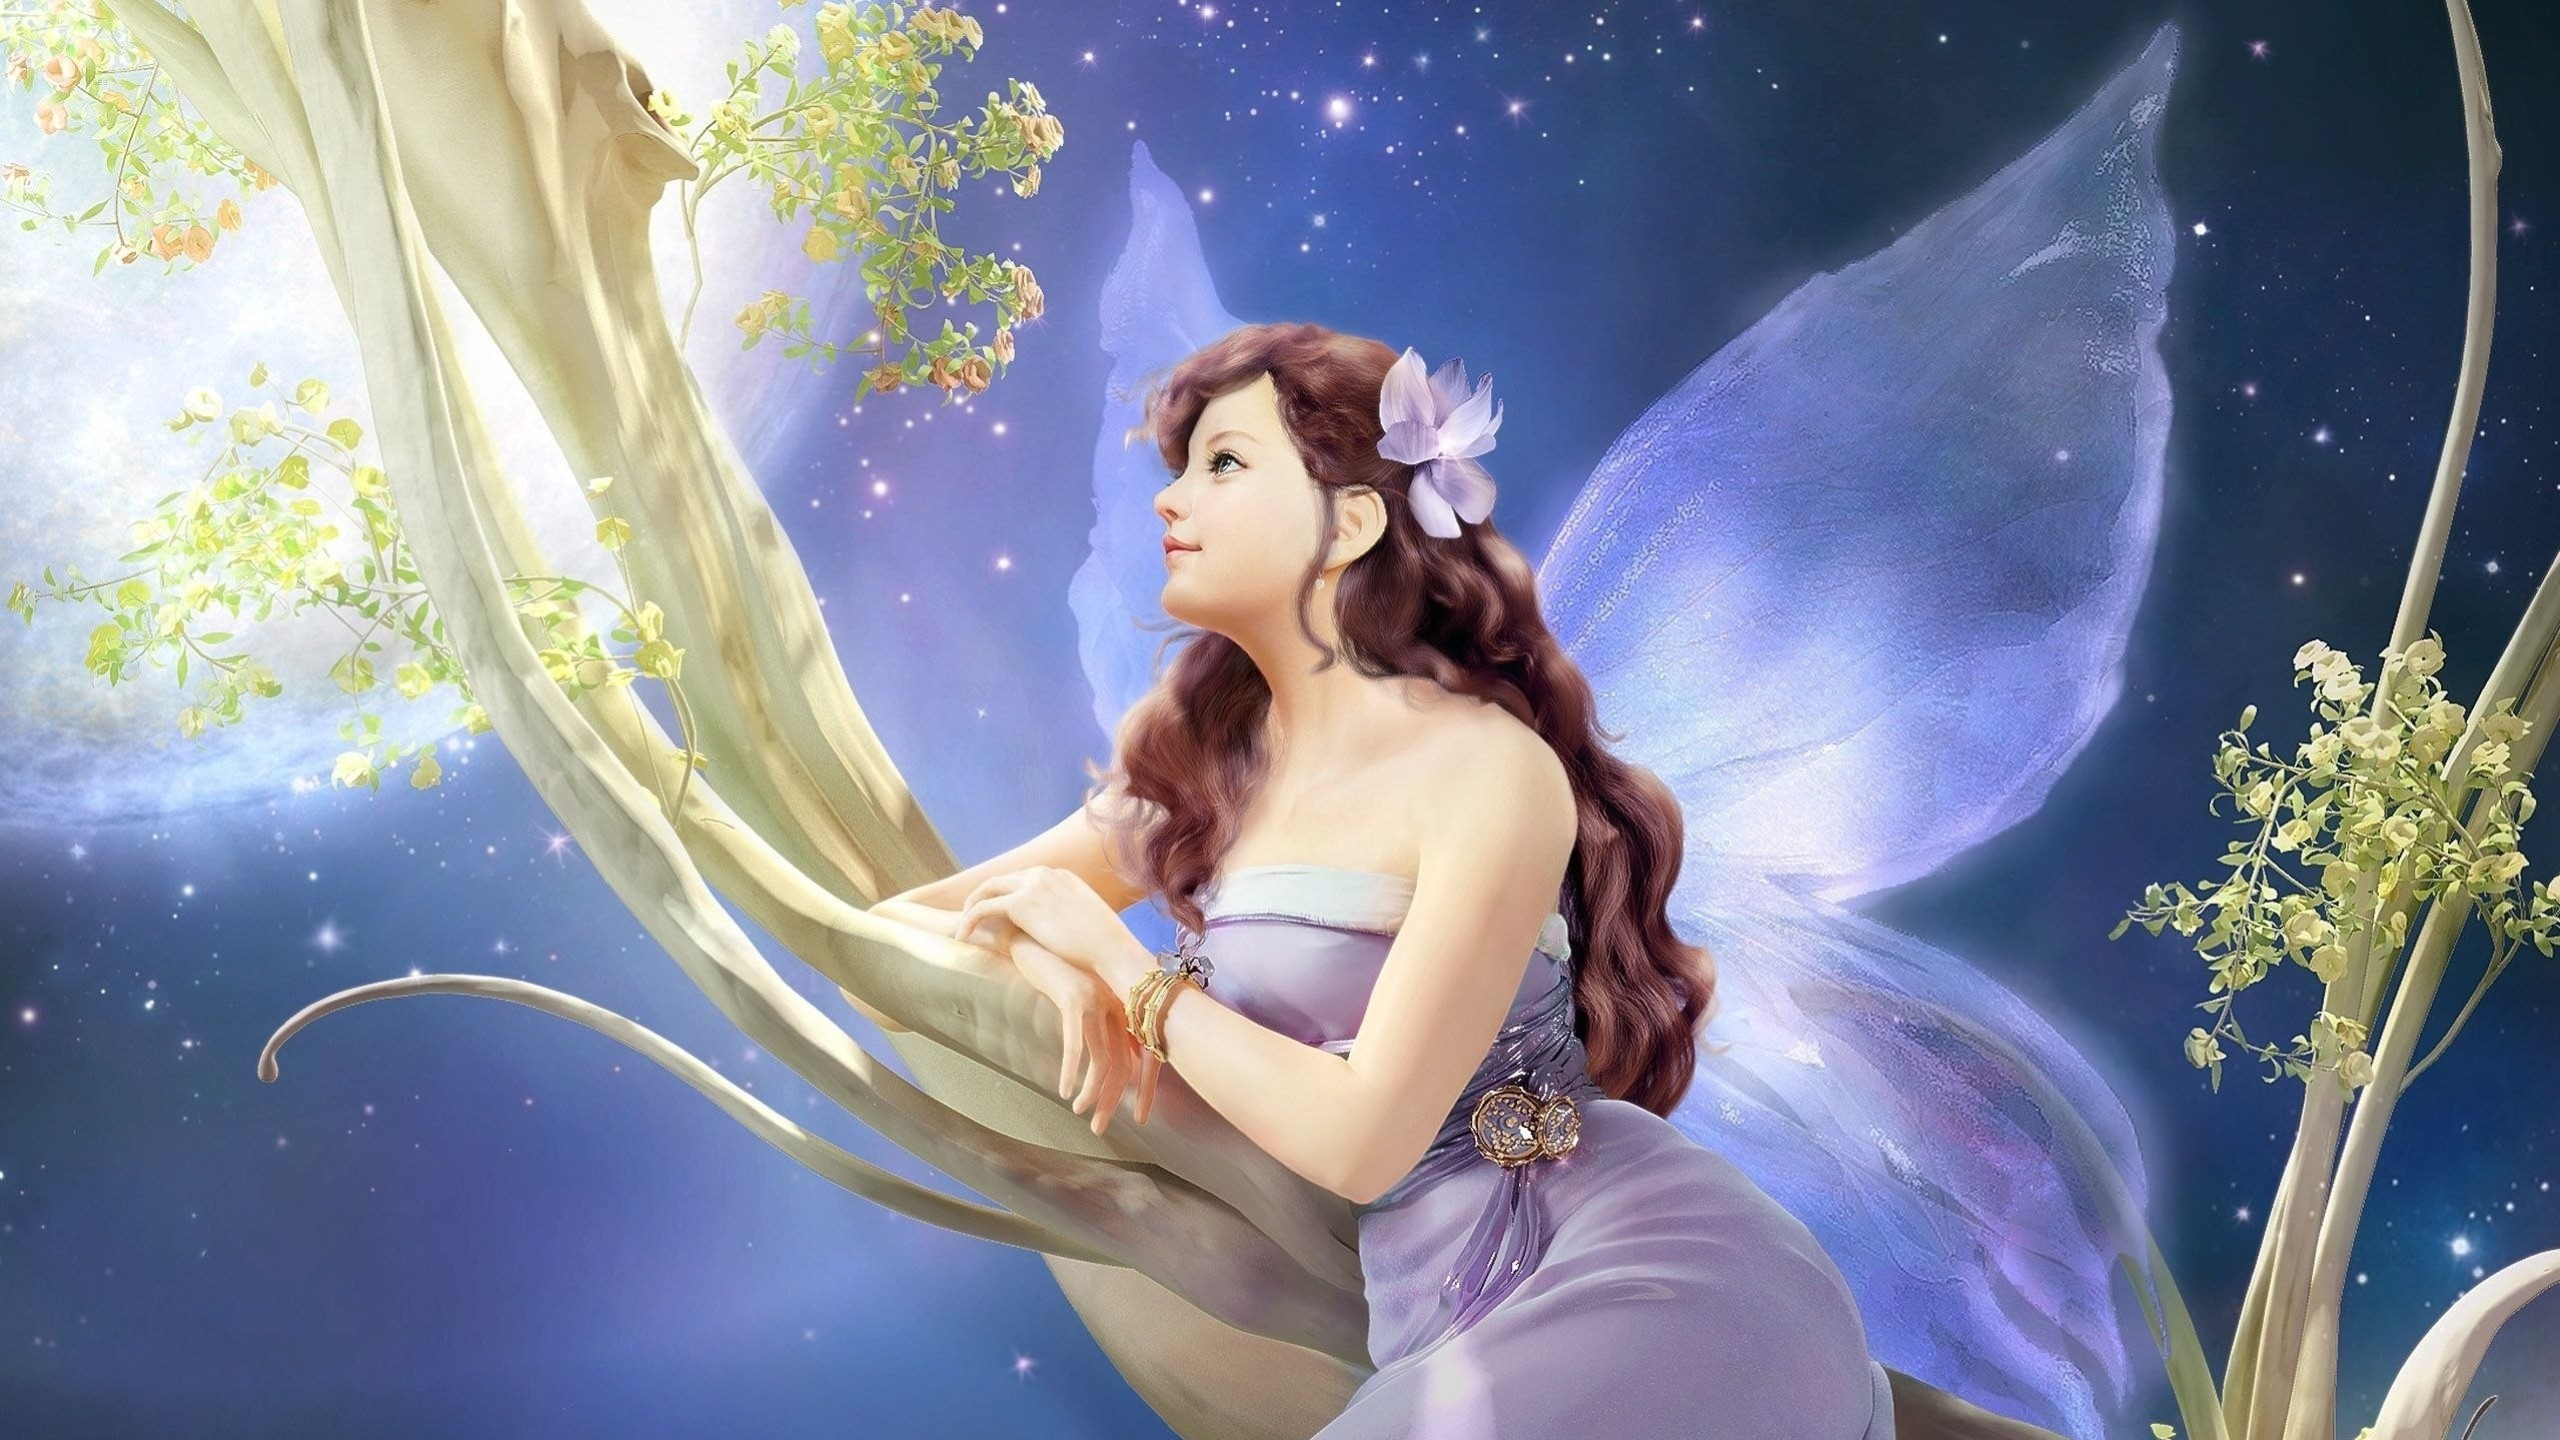 Res: 2560x1440, Fairy Wallpapers 5 - 2560 X 1440